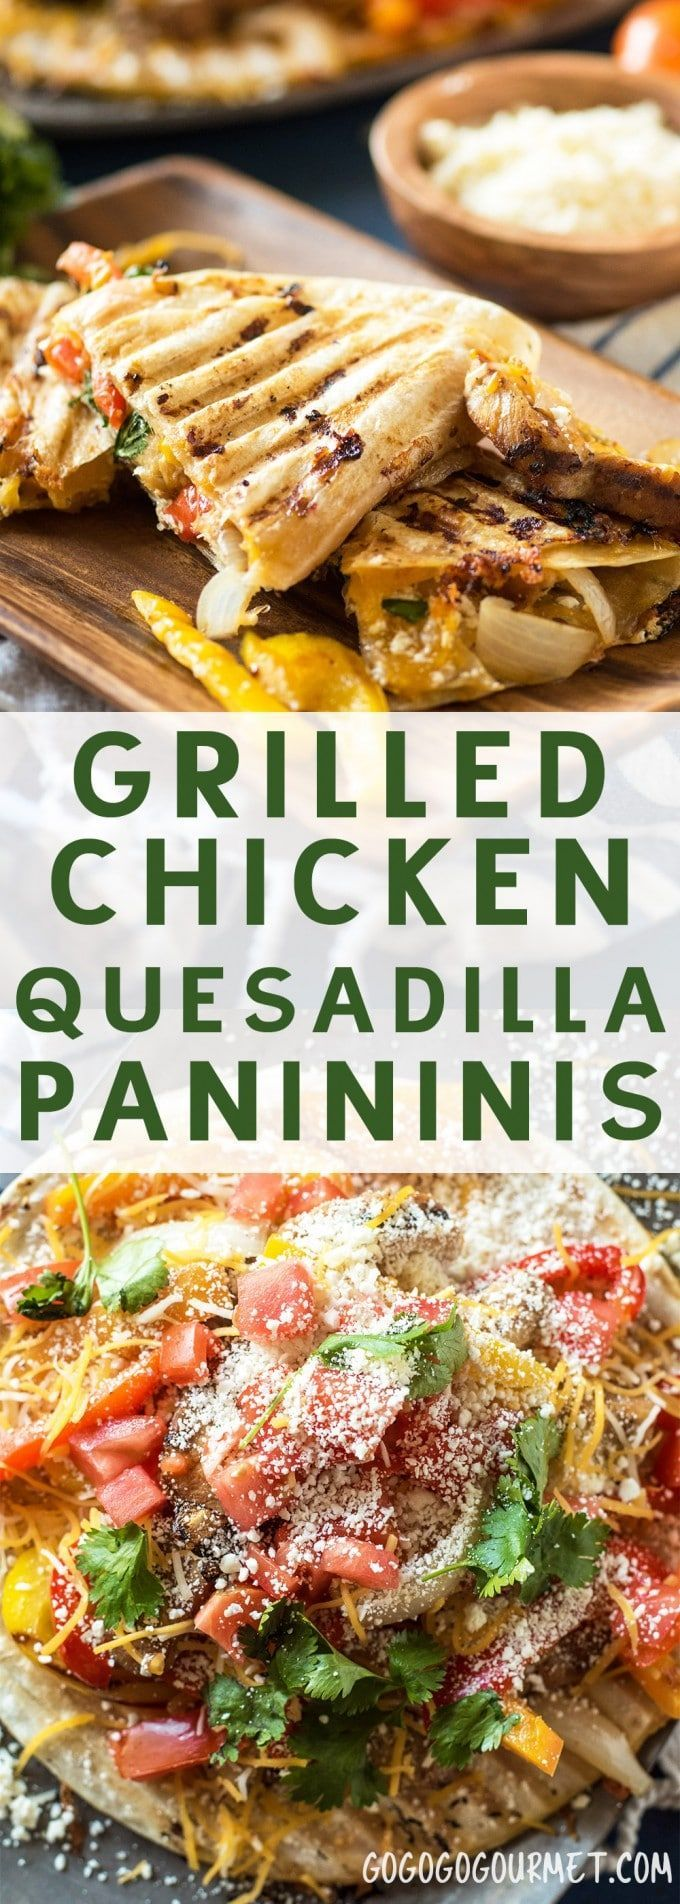 Grilled Chicken Quesadilla Paninis are a great weeknight meal- fast, convenient, tasty and NO dishes!! @gogogogourmet via @gogogogourmet